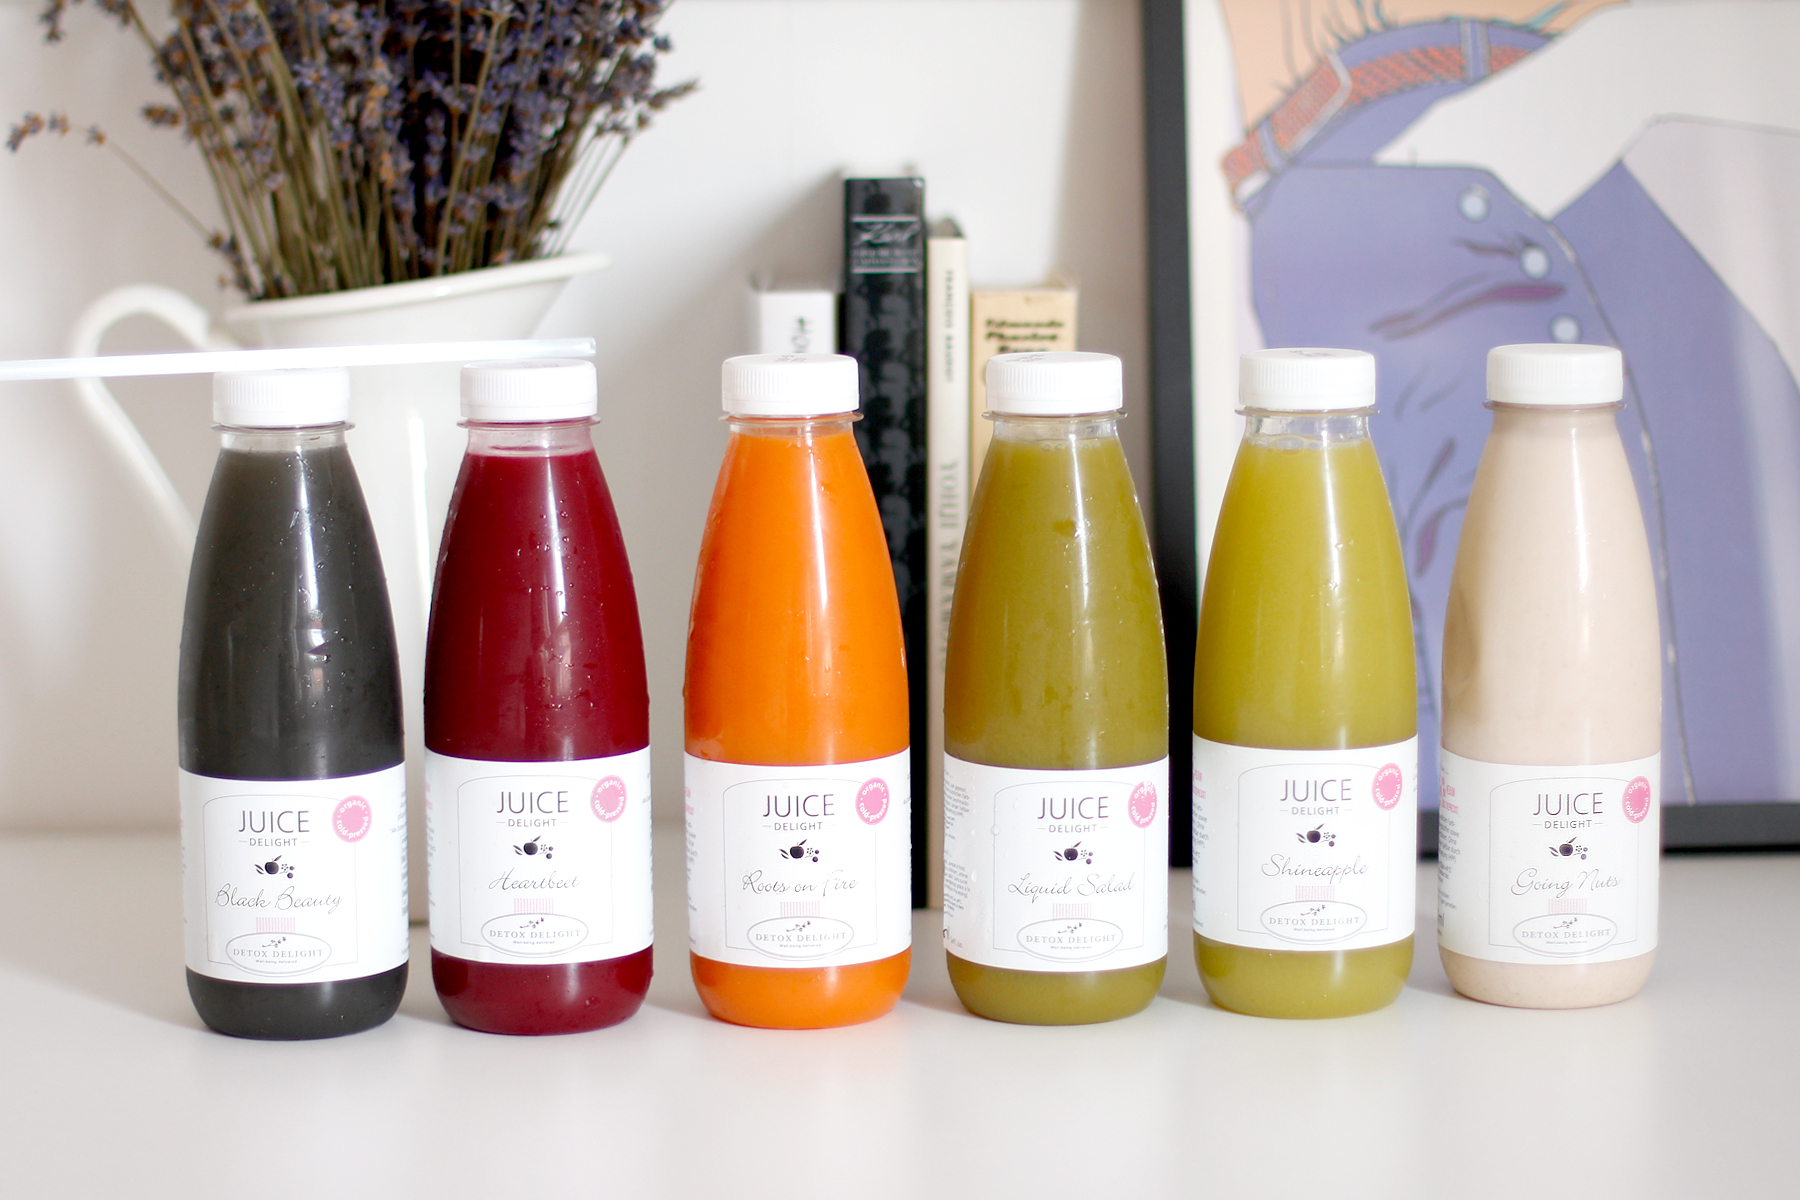 detox delight juice delight easy juice cleanse saftkur entgiften münchen kaltgepresst bio säfte saft cold pressed ricarda schernus cats & dogs lifestyle blog fashion blog 2